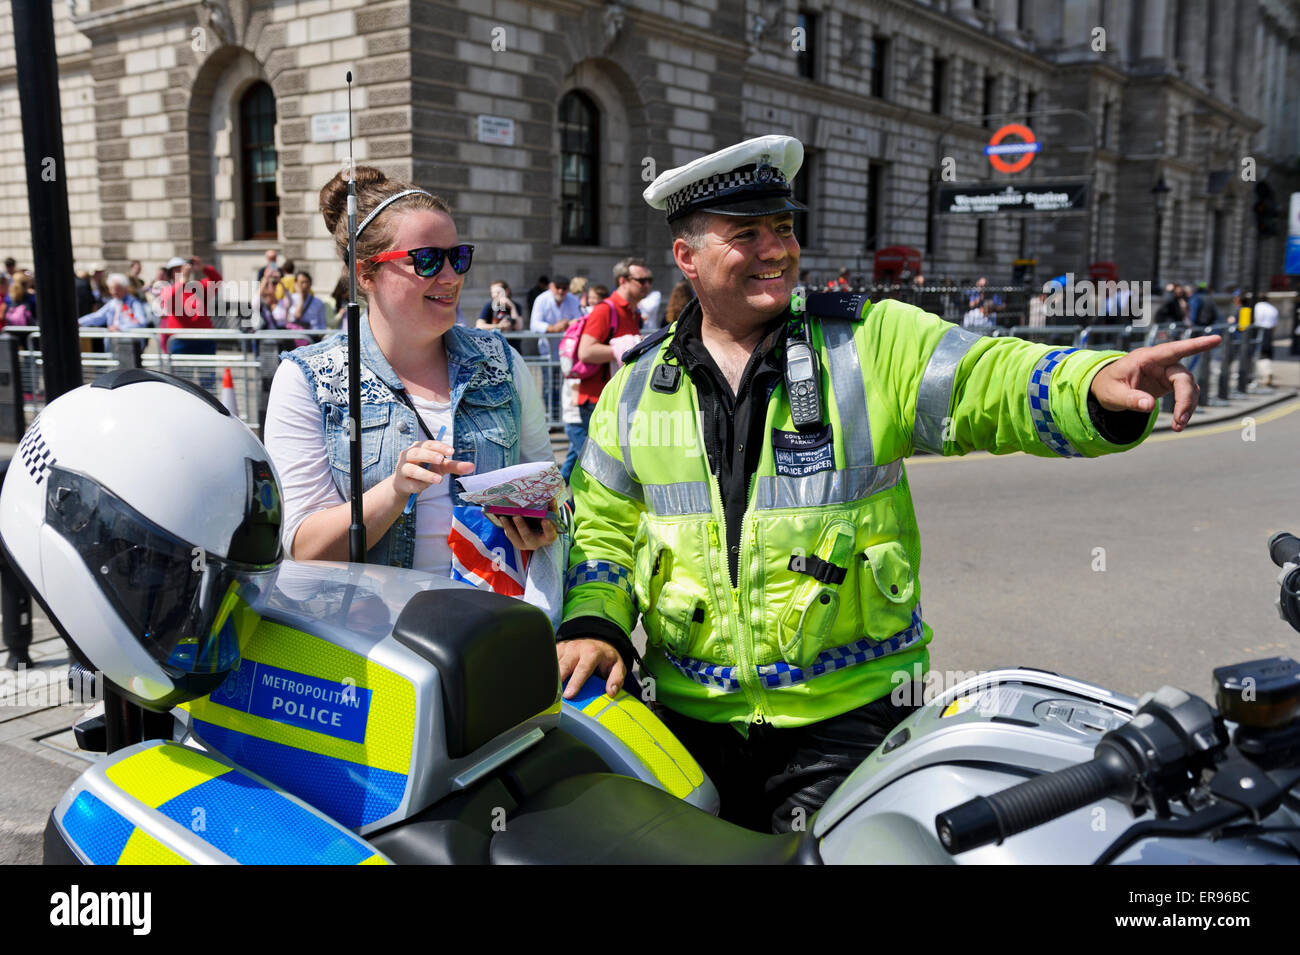 A male traffic police officer in bright yellow jacket with high powered motorbike talking to one young woman, London, - Stock Image